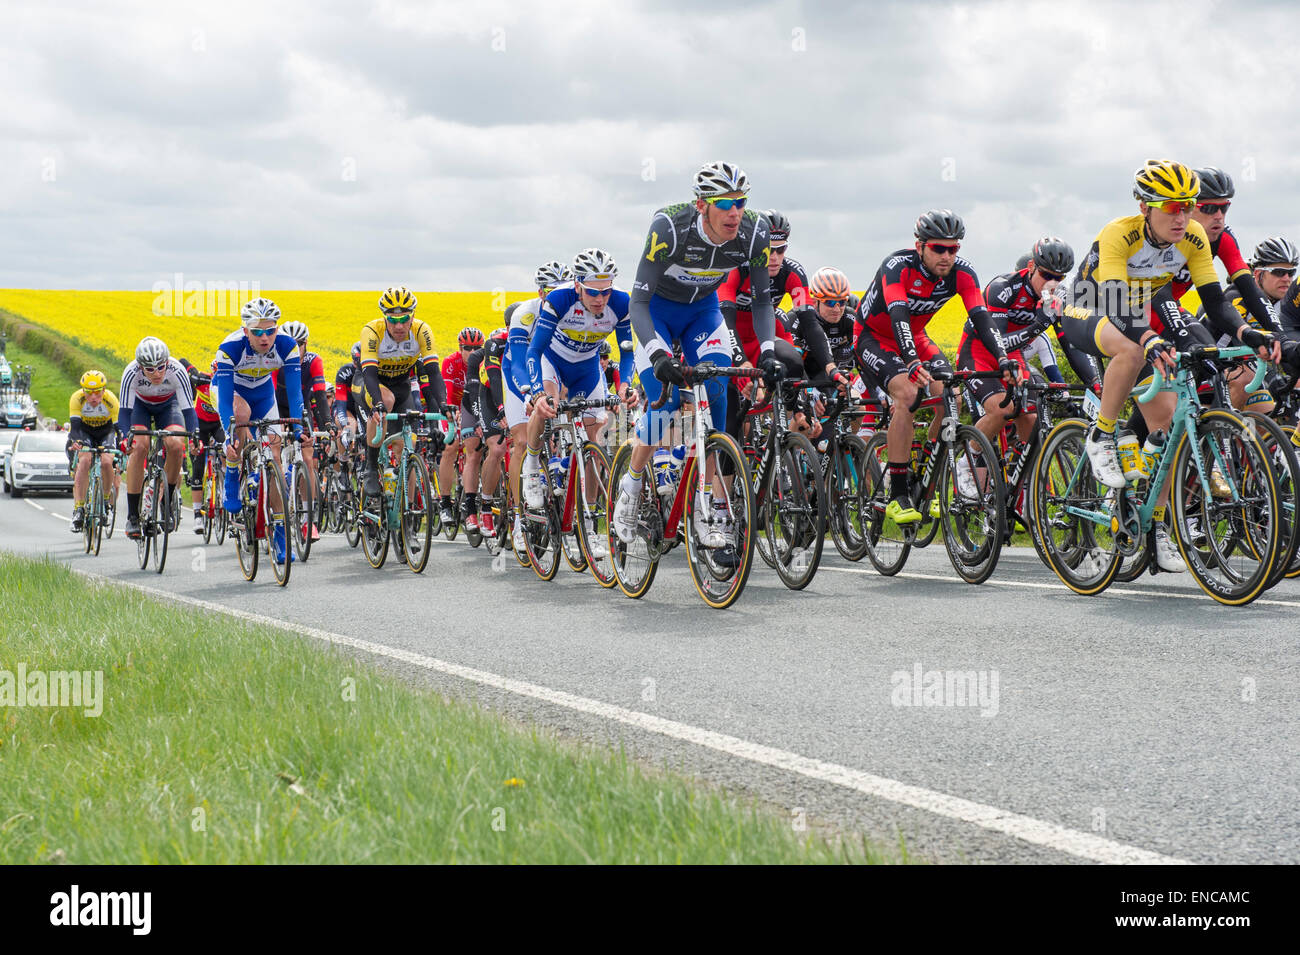 Main peloton of cyclists, Stage two, Tour de Yorkshire, Yorkshire Wolds in background. Yorkshire, England, UK Stock Photo